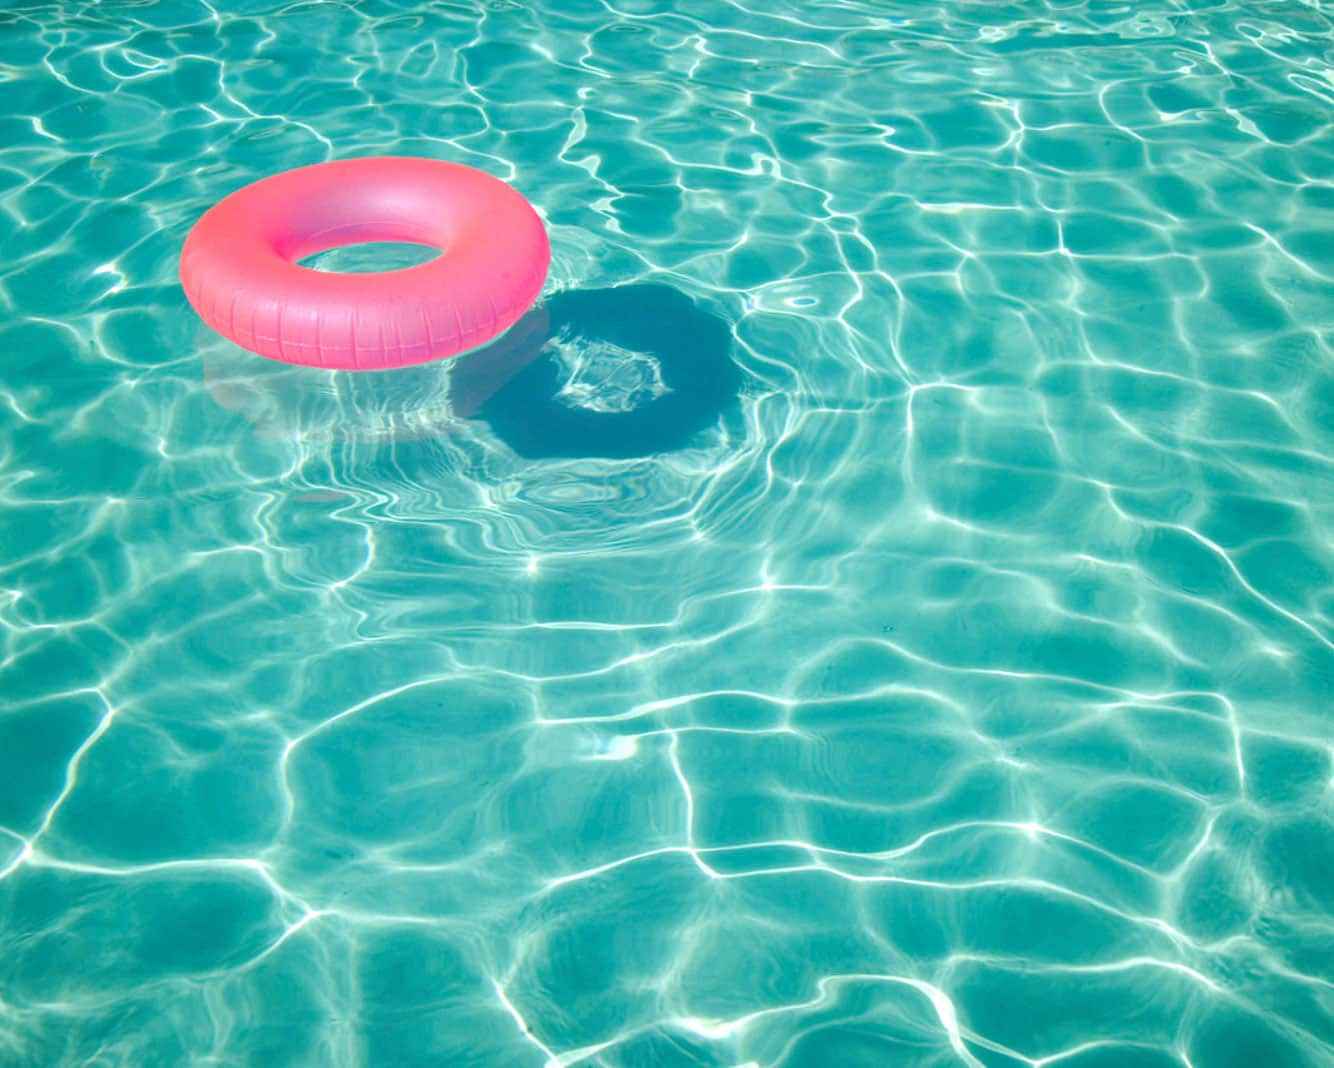 Pink inflatable tube in swimming pool